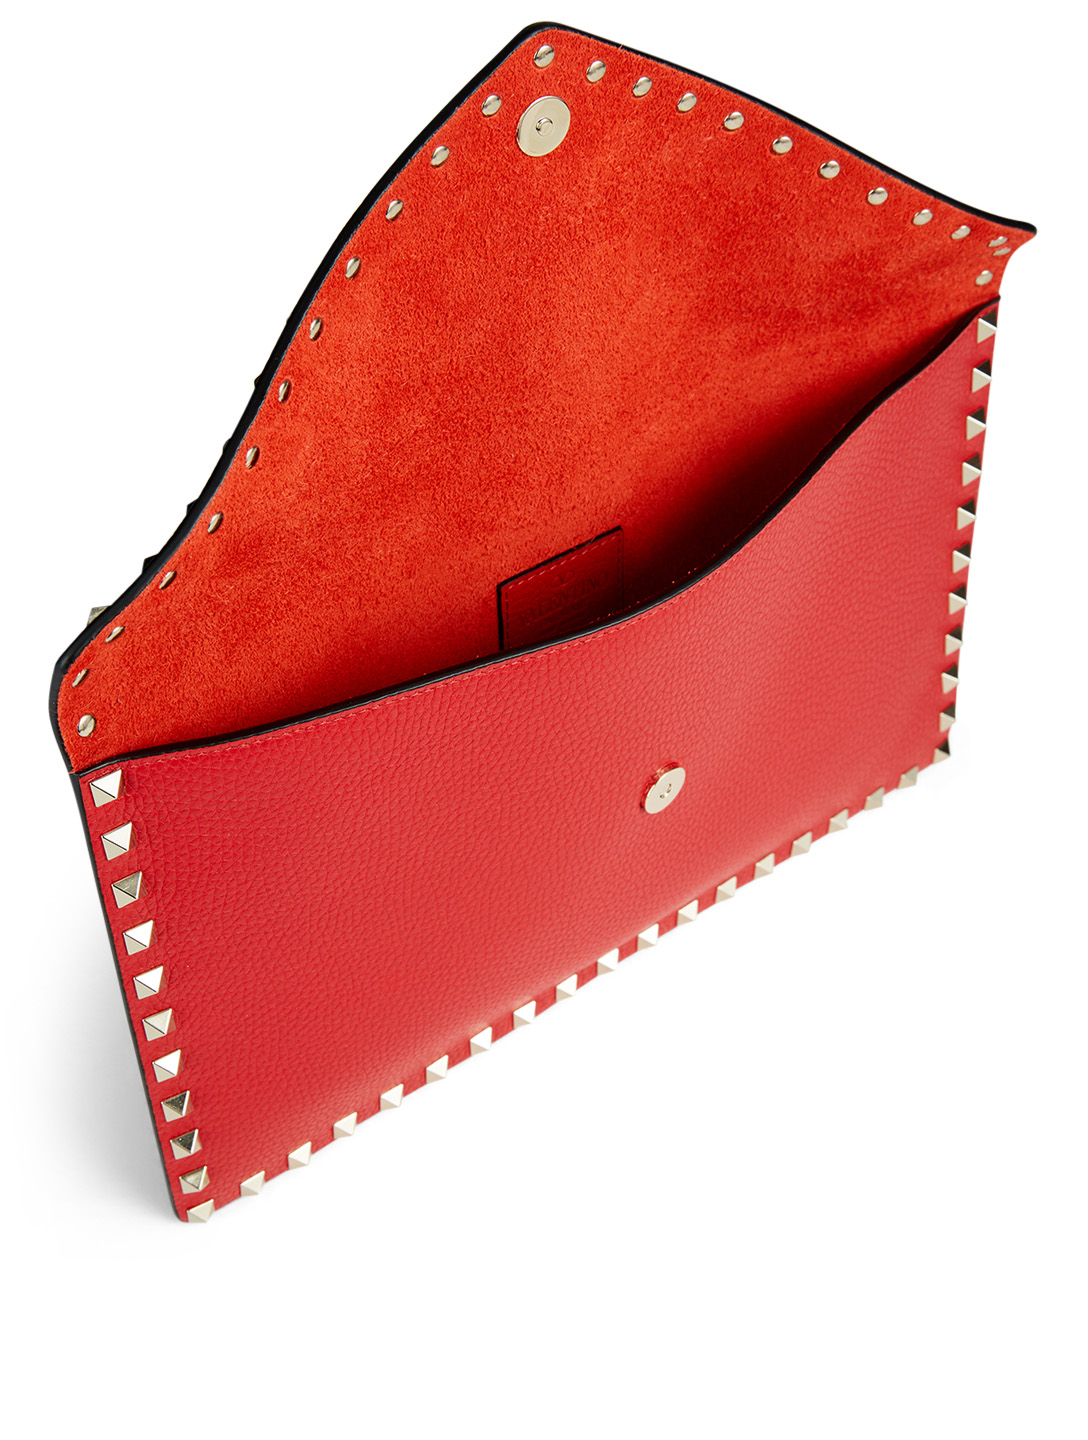 VALENTINO GARAVANI Large Rockstud Leather Pouch Women's Red